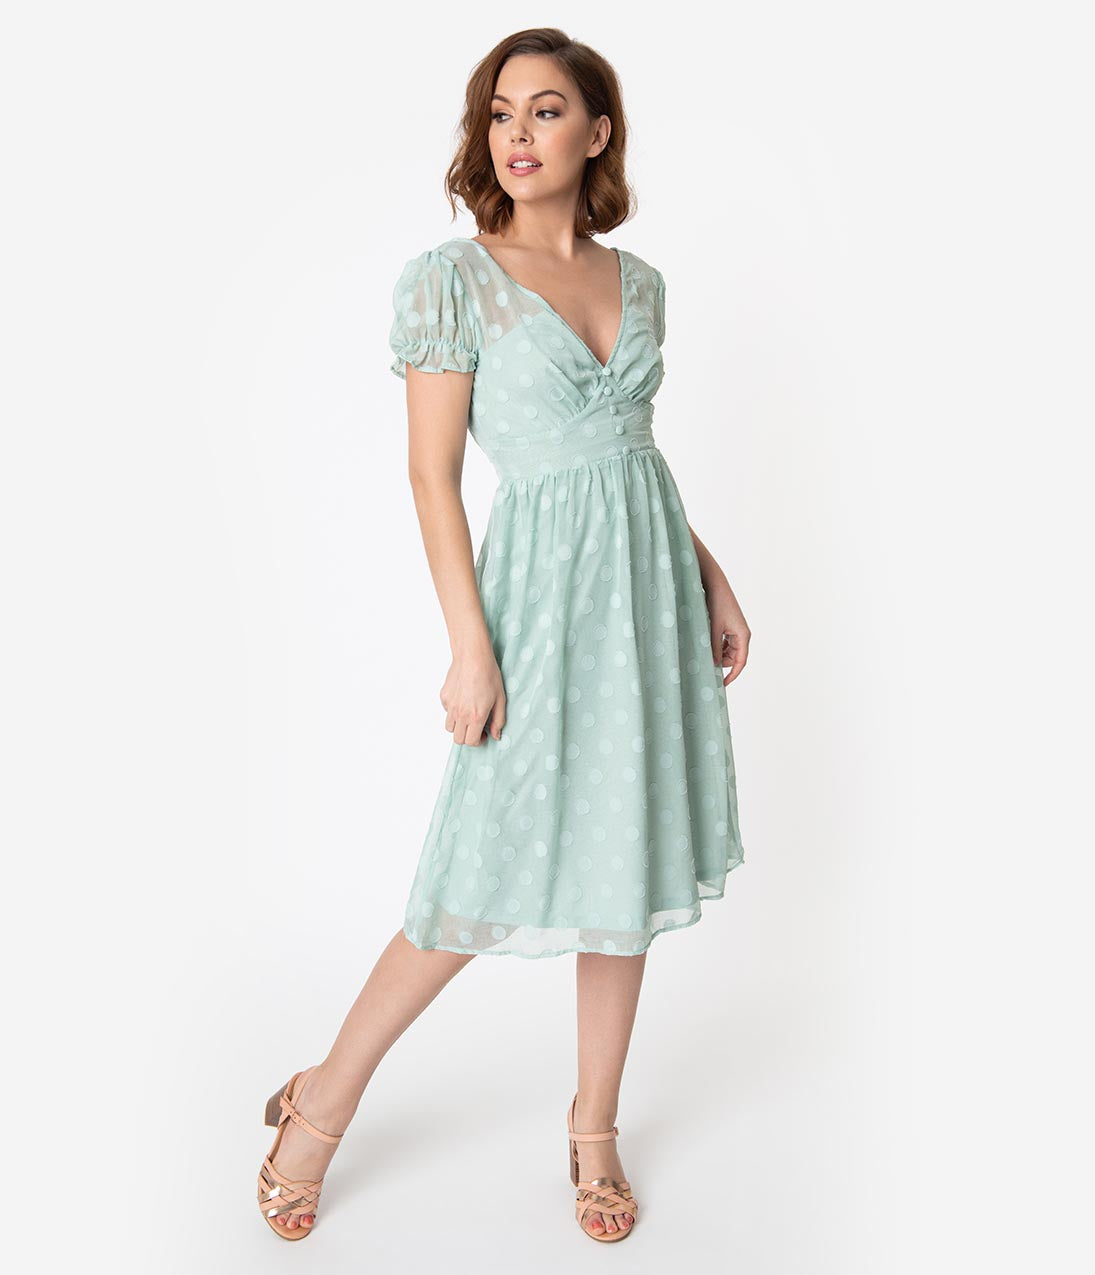 61927fc76b8 1950s Style Mint Polka Dot Soft Textured Weave Fit   Flare Dress